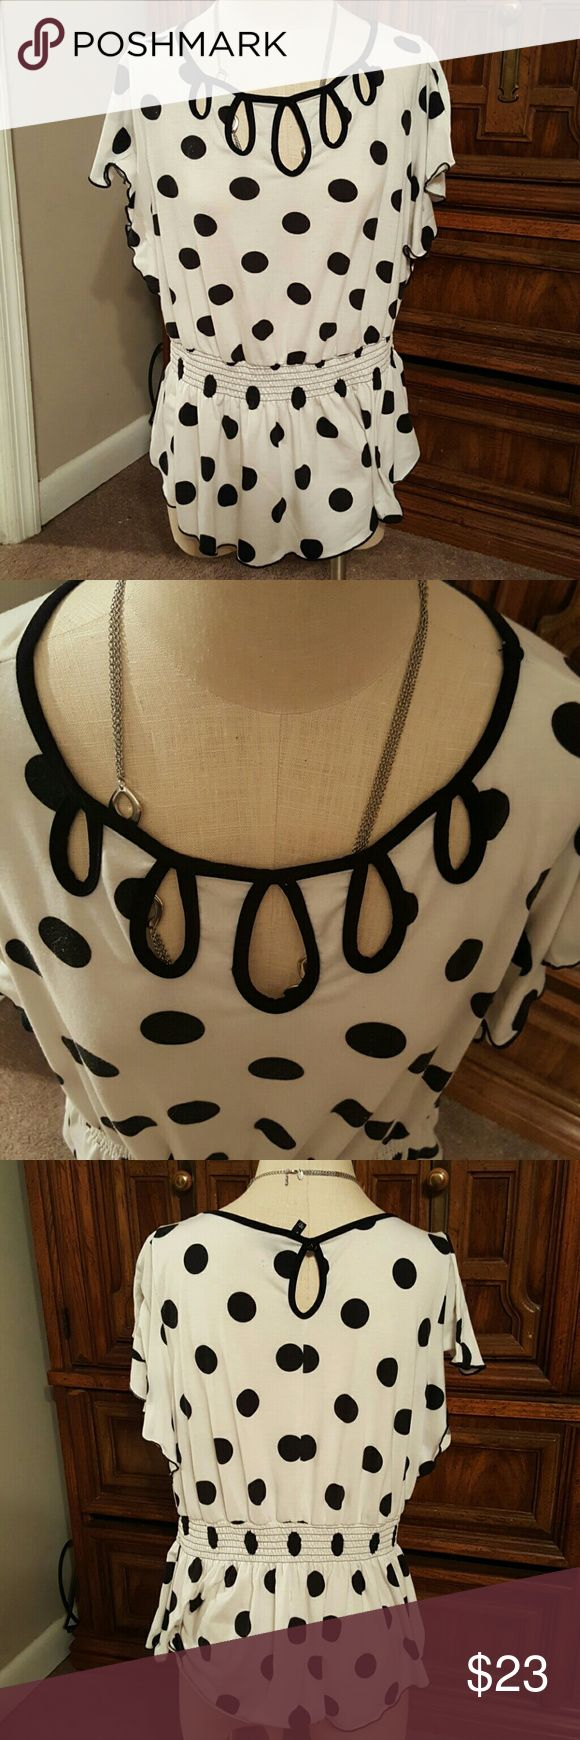 Polka Dots 4 life Beautiful Black and White blouse with batwing sleeves accenting like cutouts on the chest of the shirt and a waist scrunch. Gently worn but no imperfections. Worn perfectly with some black capri or skinnies. Soft business attire. new directions Tops